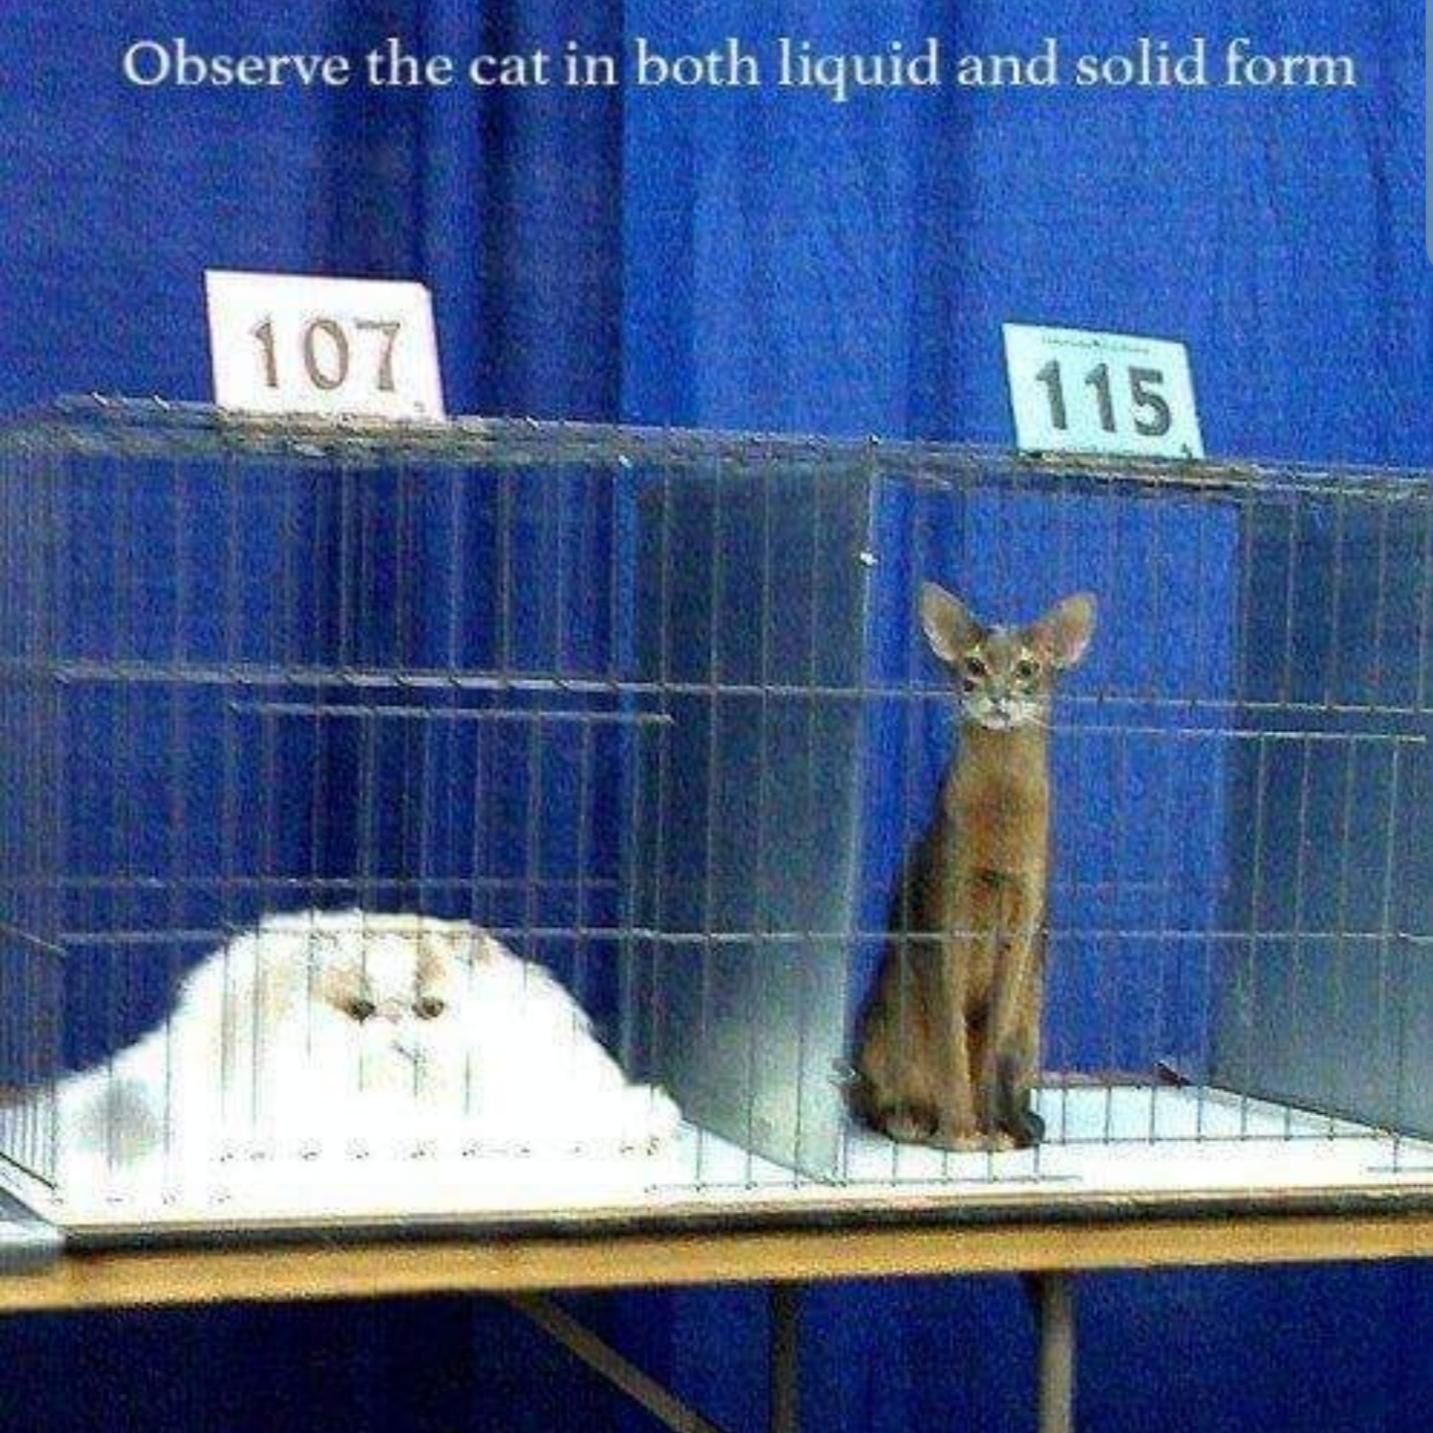 I've always wanted a liquid cat personally.